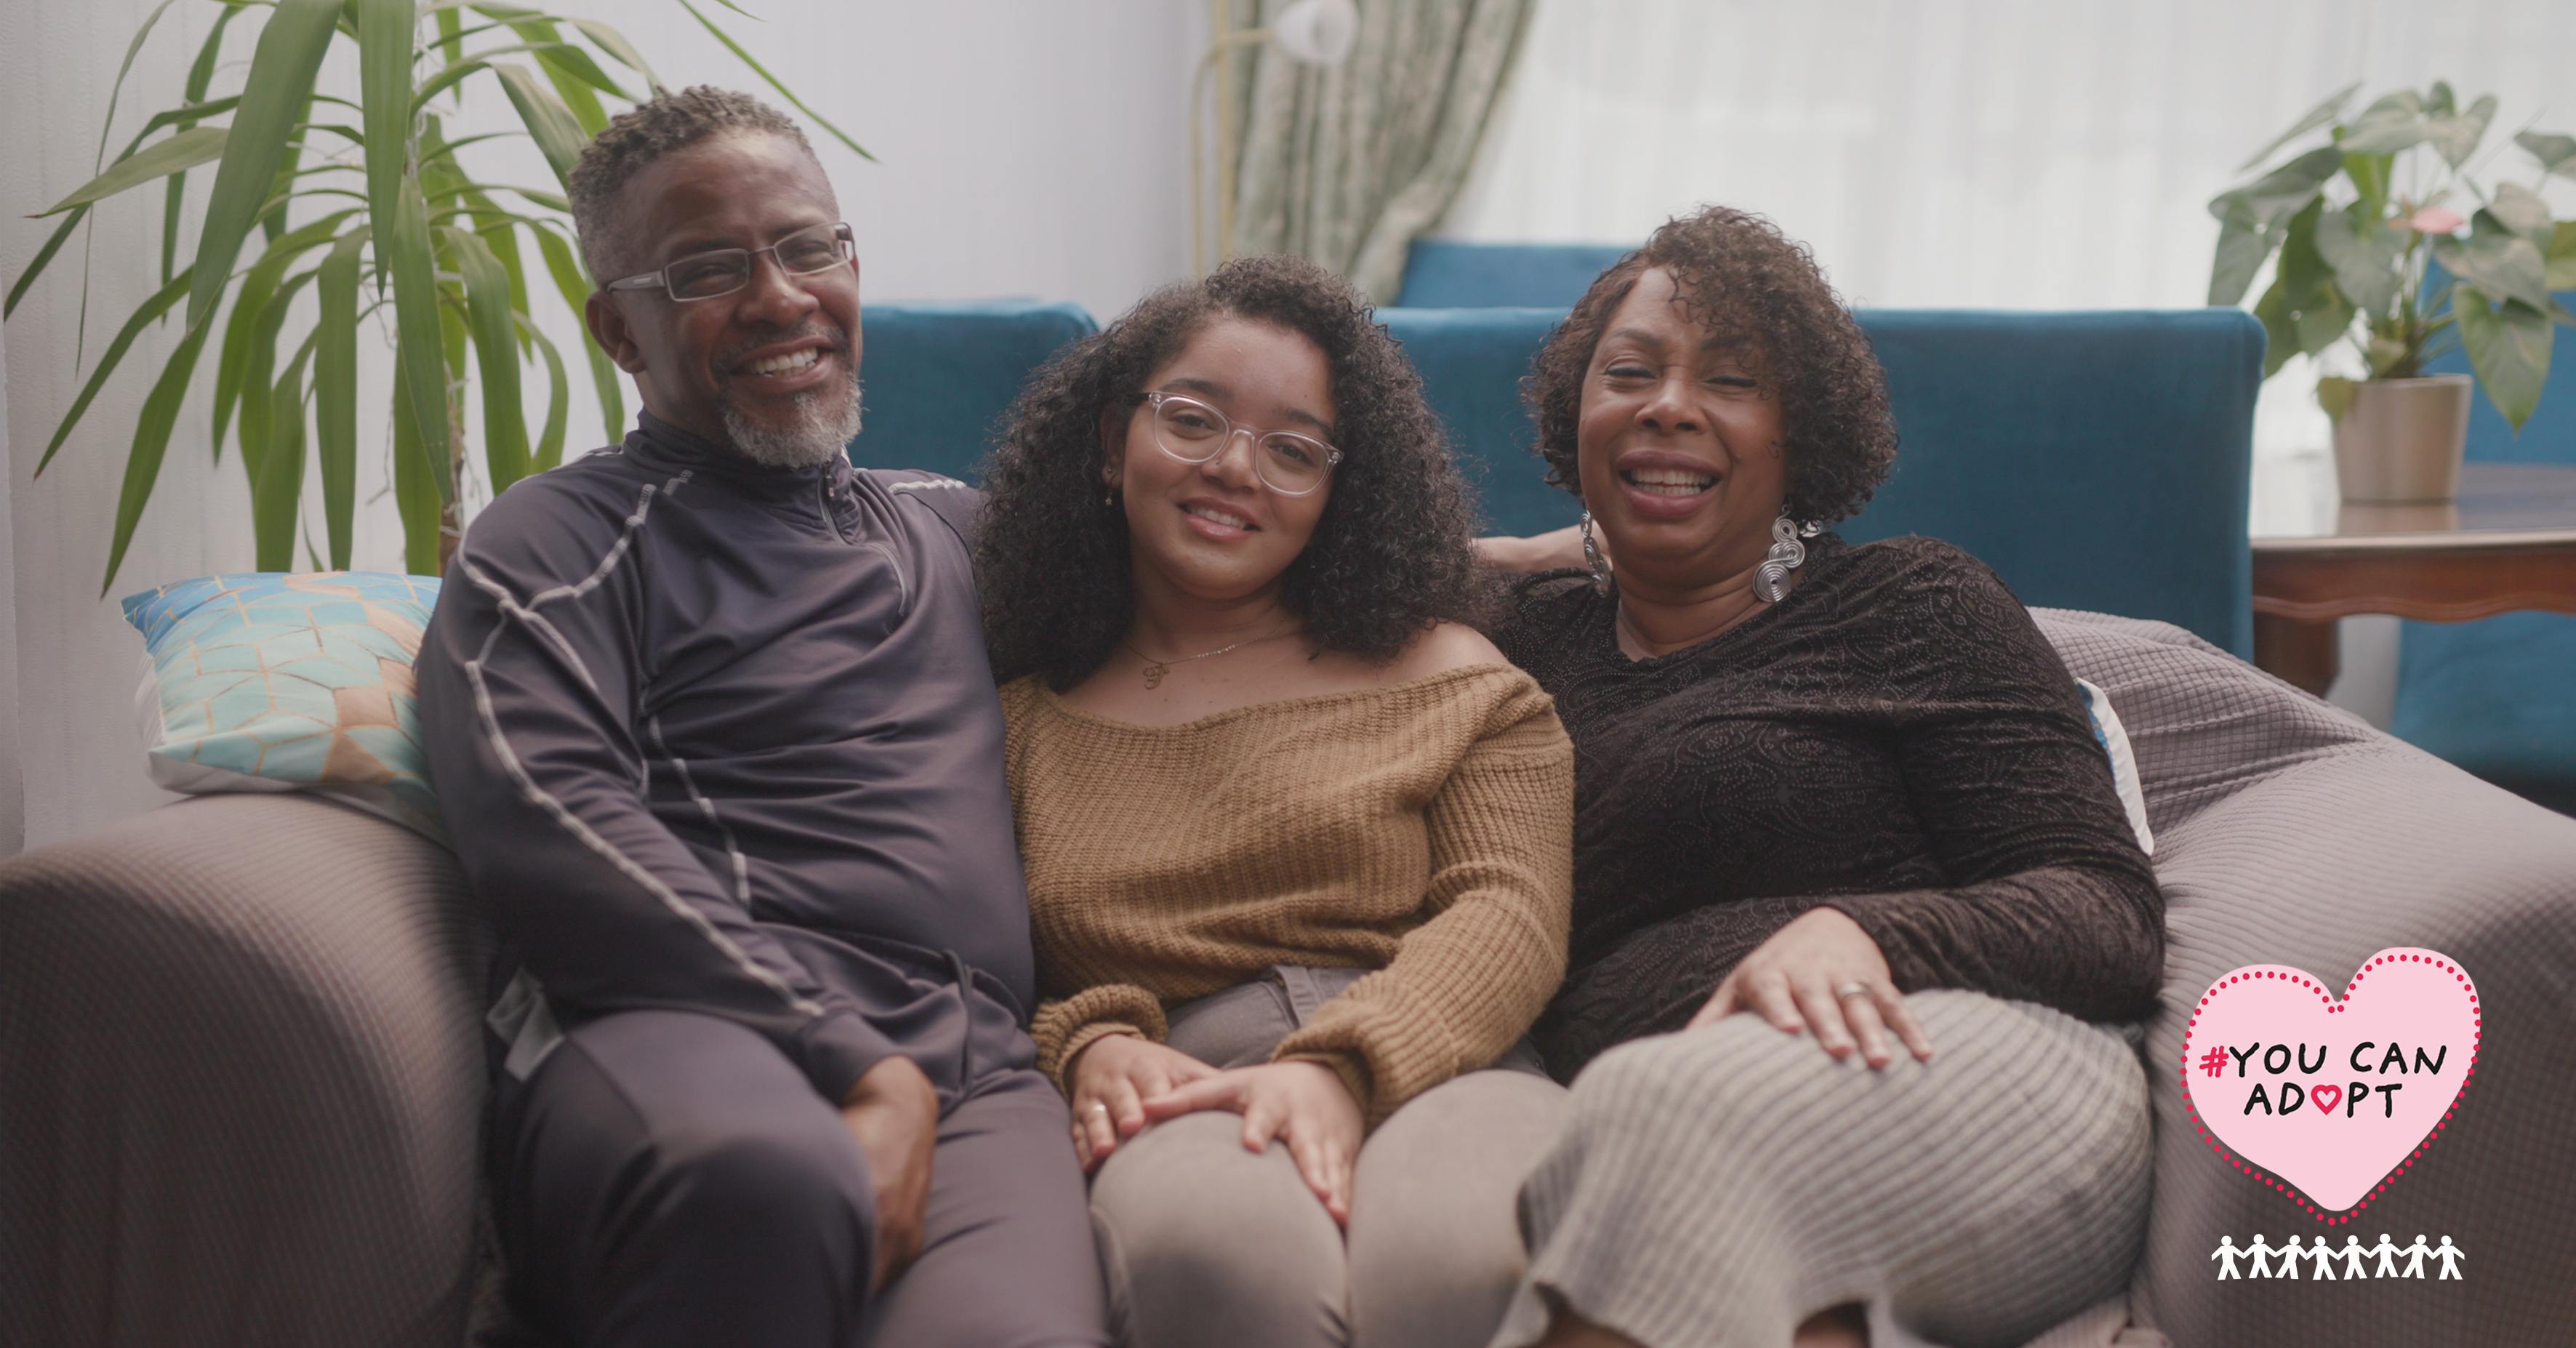 THE #YOUCANADOPT CAMPAIGN LAUNCHES A NEW FILM FEATURING BLACK ADOPTIVE PARENTS SHARING THEIR EXPERIENCES